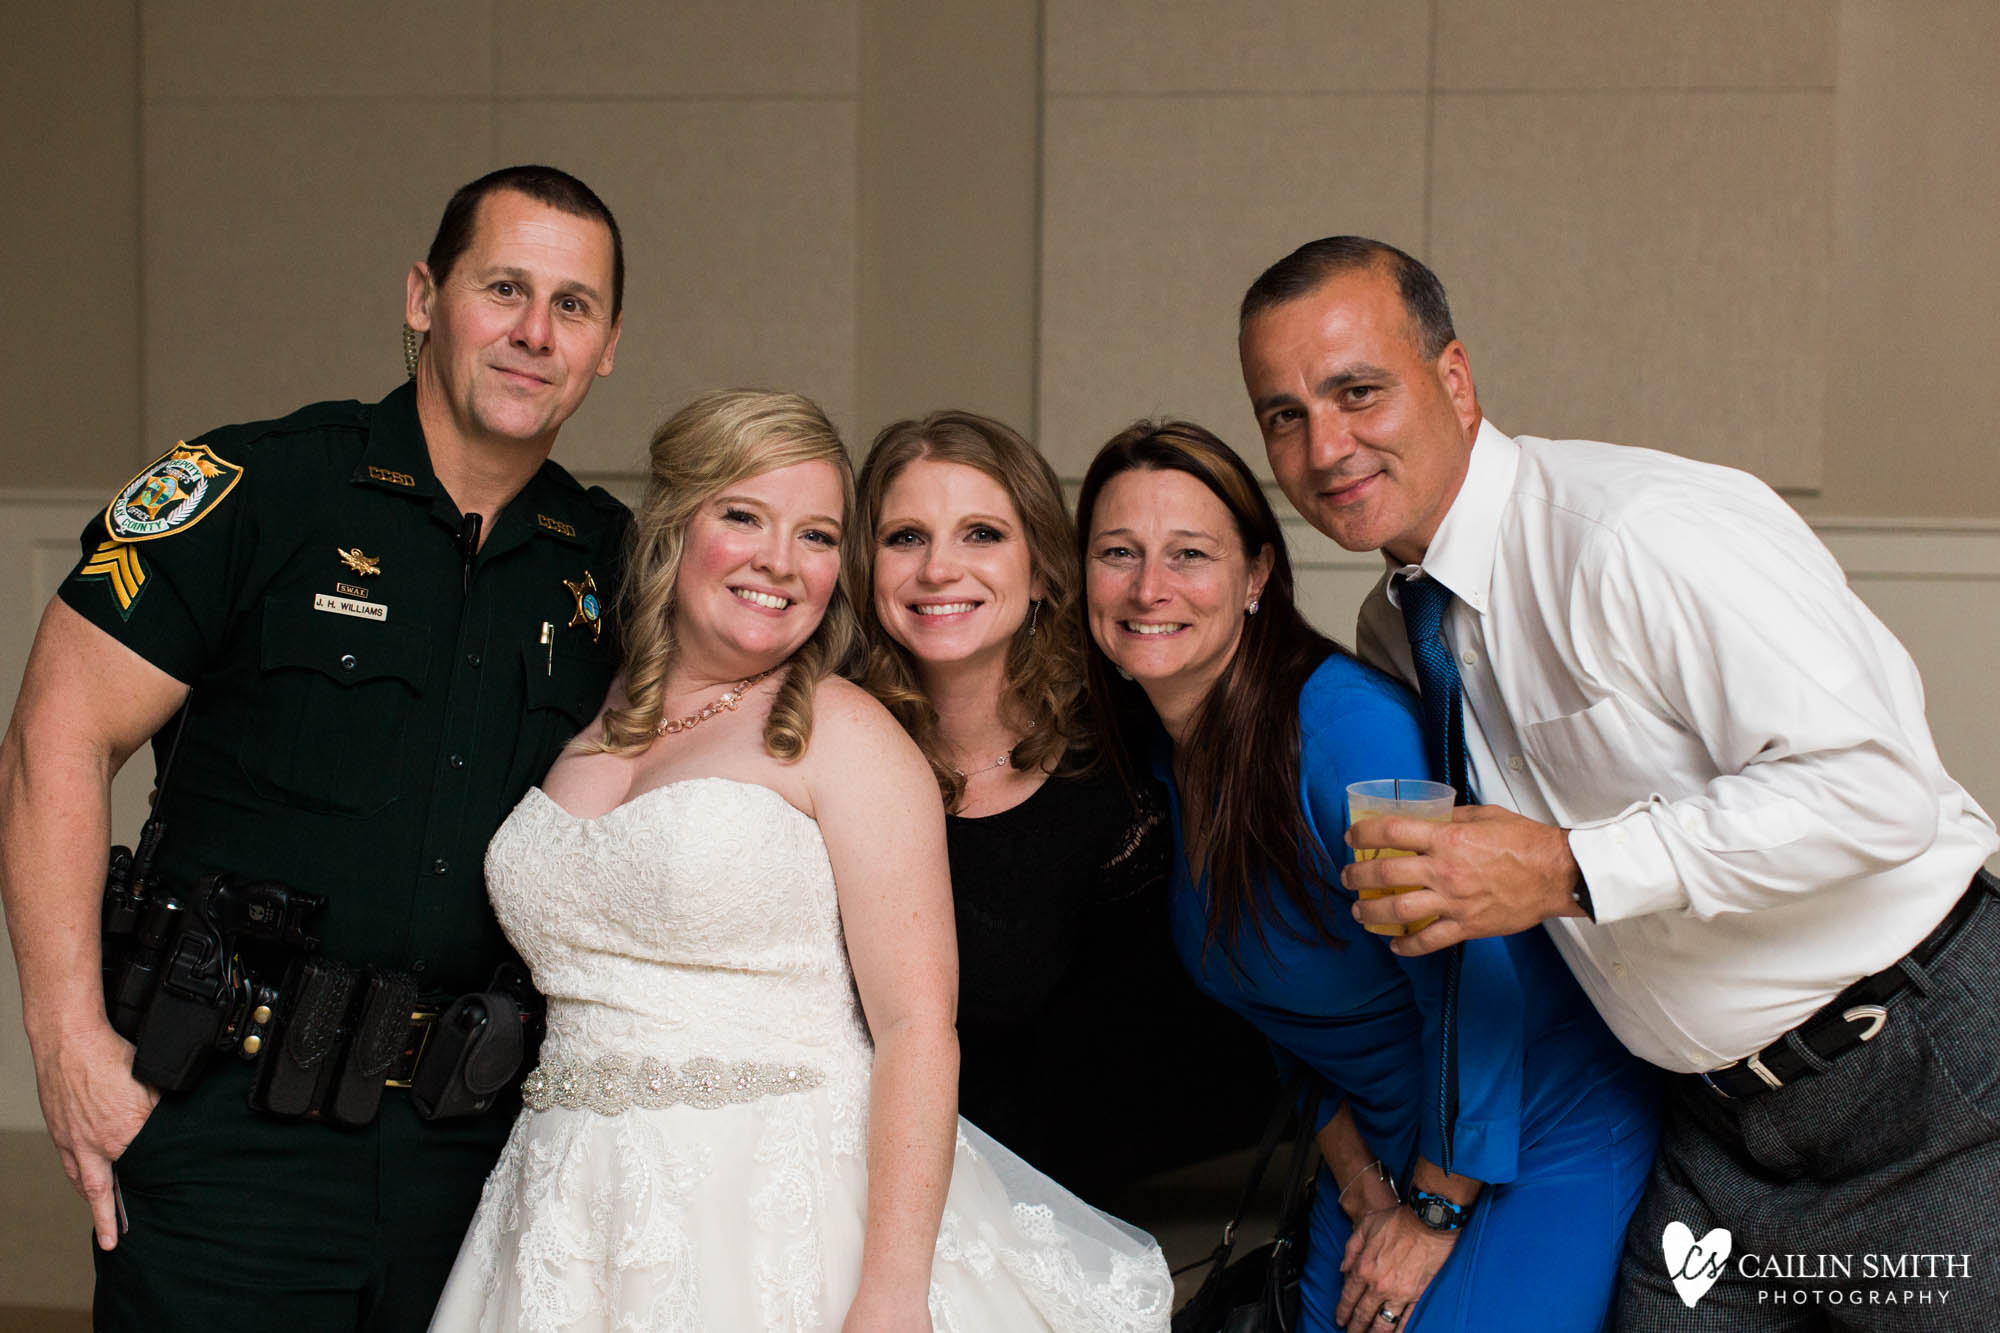 Christie_Nathan_Wedding_Photography_0075.jpg